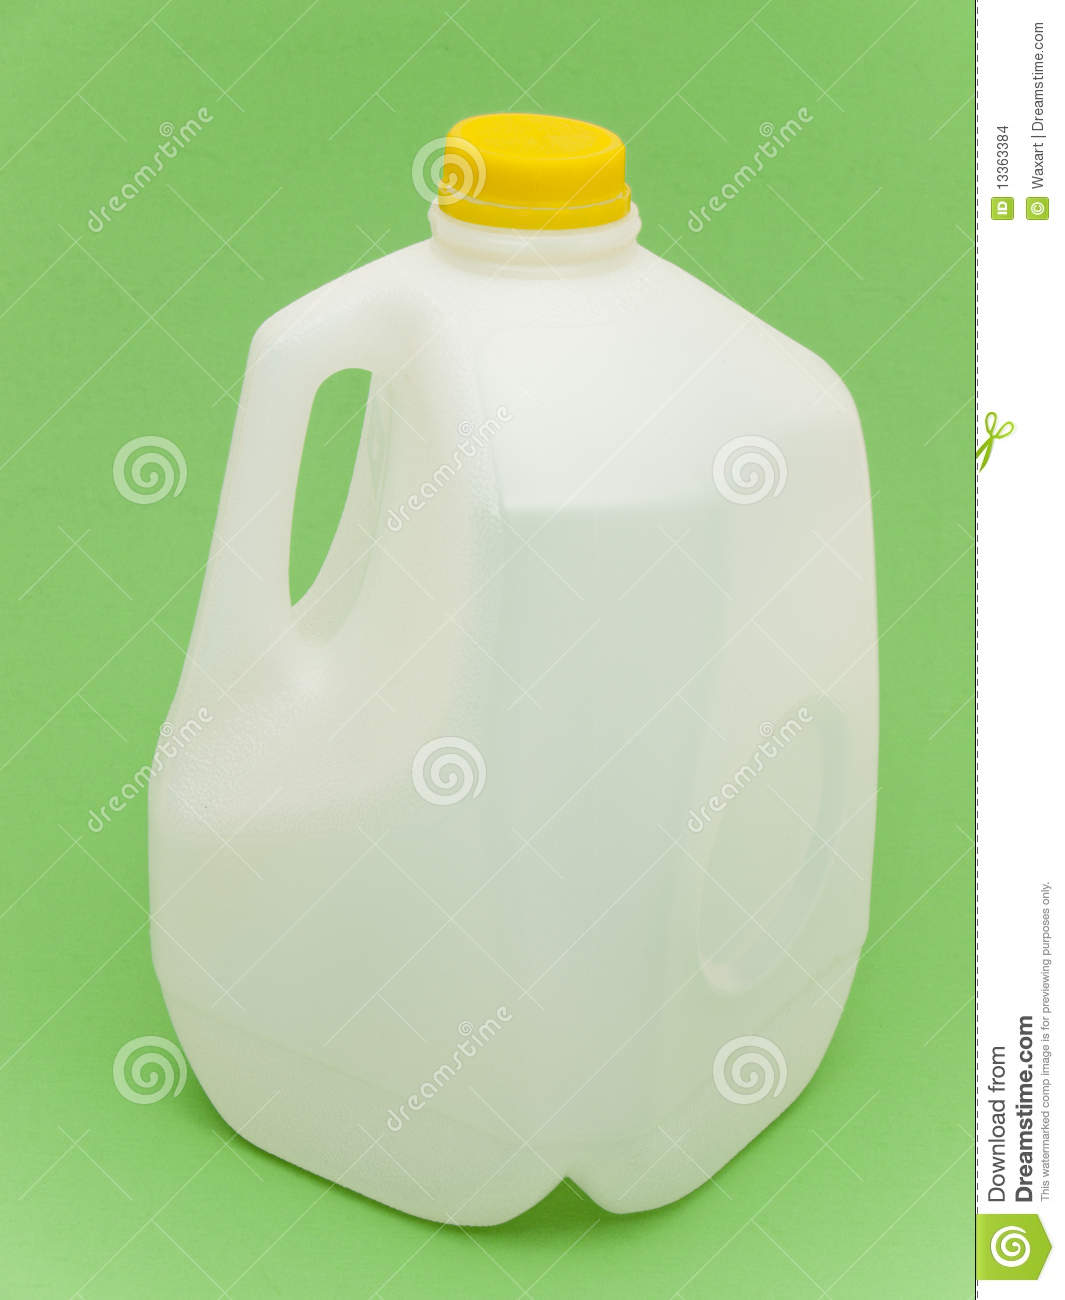 Empty Milk Carton For Recycling Stock Photo - Image: 13363384